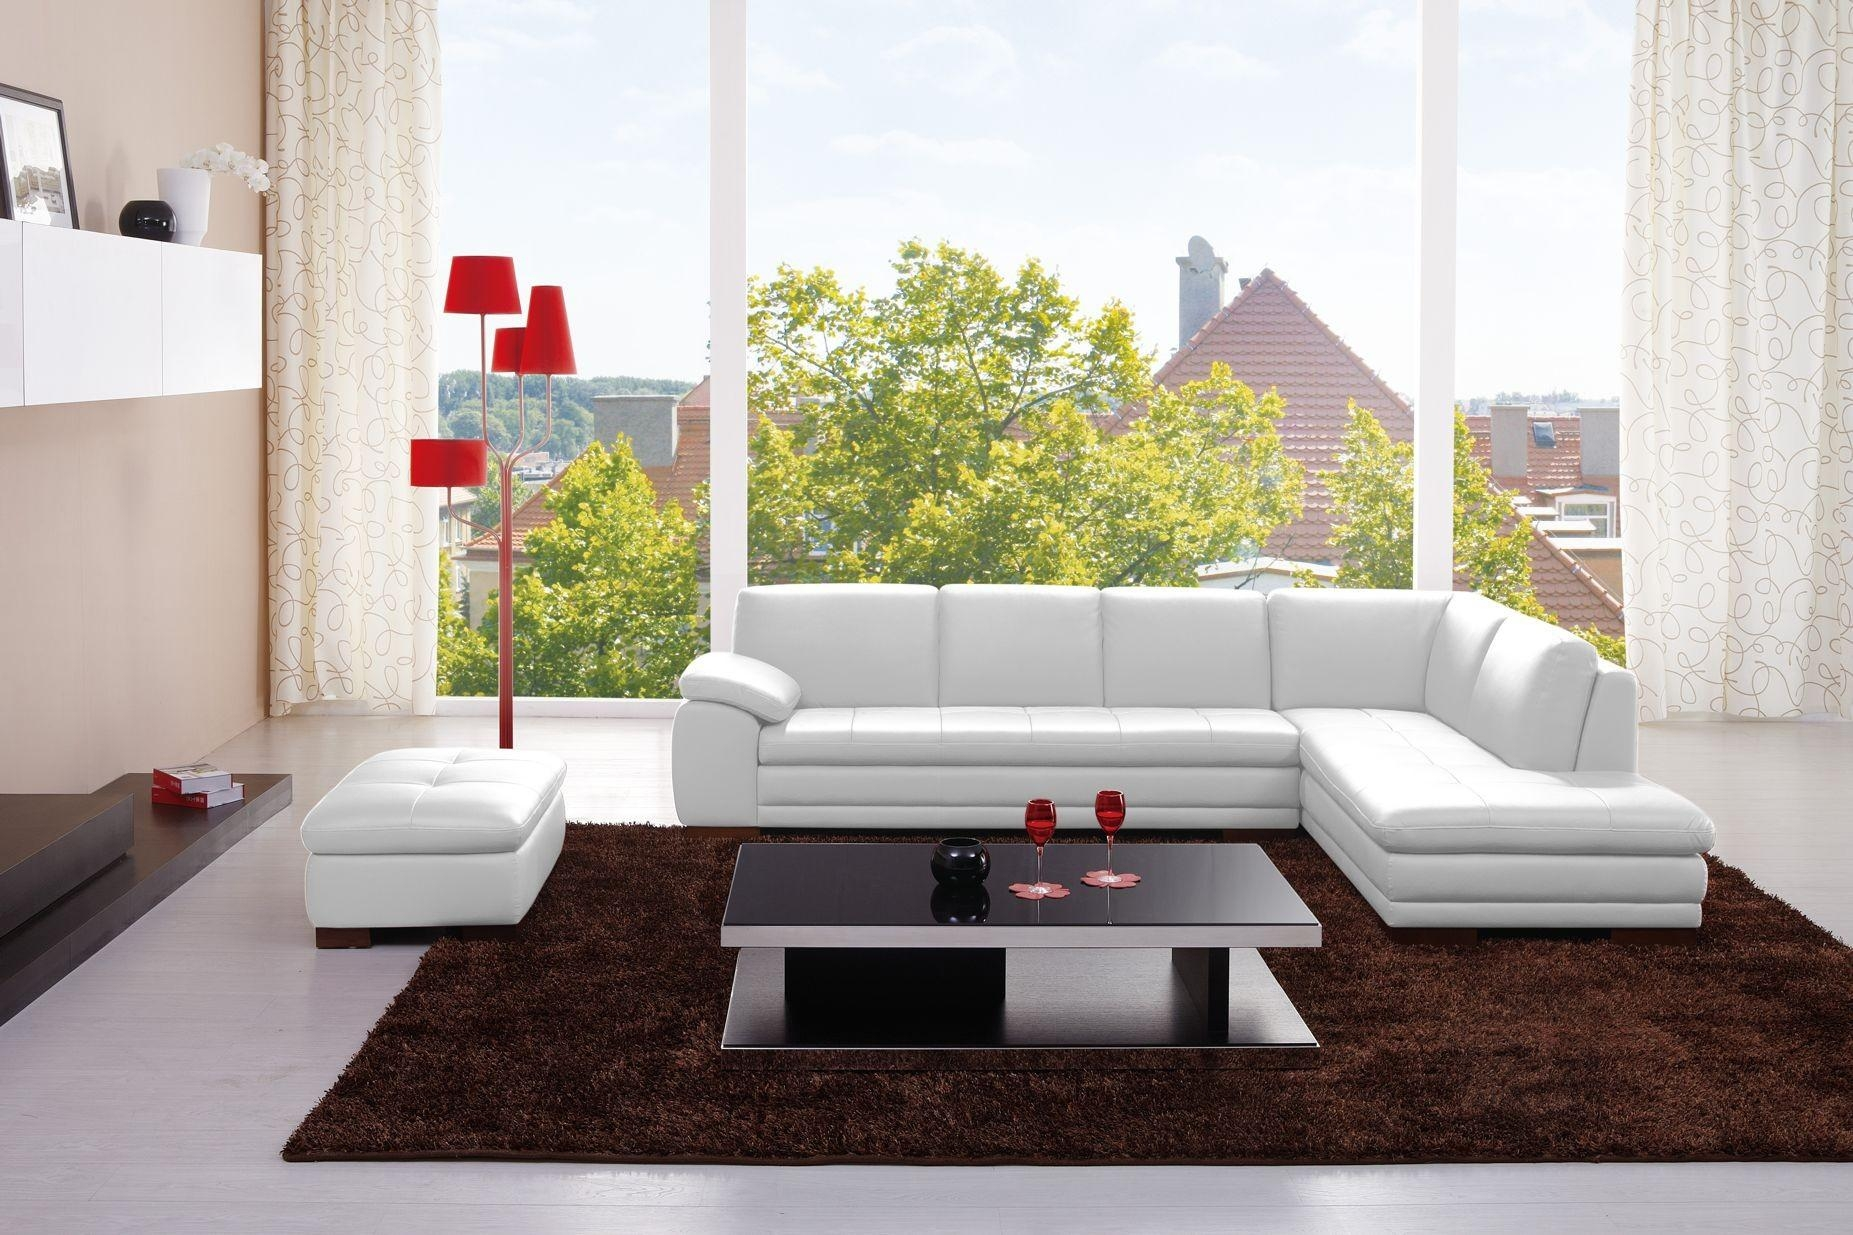 625 Italian Leather Modern Sectional Sofa throughout Leather Modern Sectional Sofas